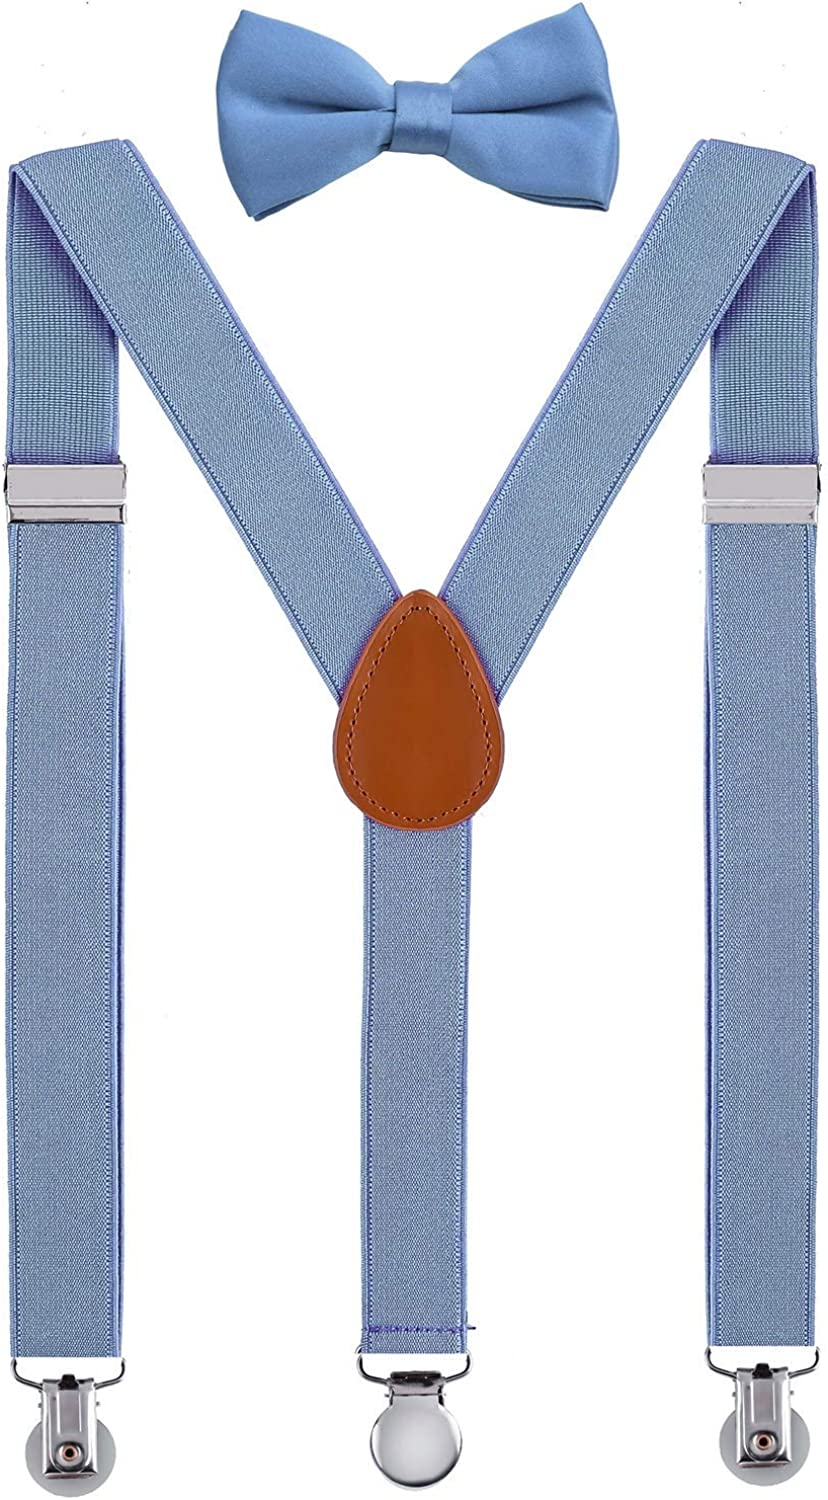 SUNNYTREE Kids Suspenders Adjustable Y Back with Bow Tie Set